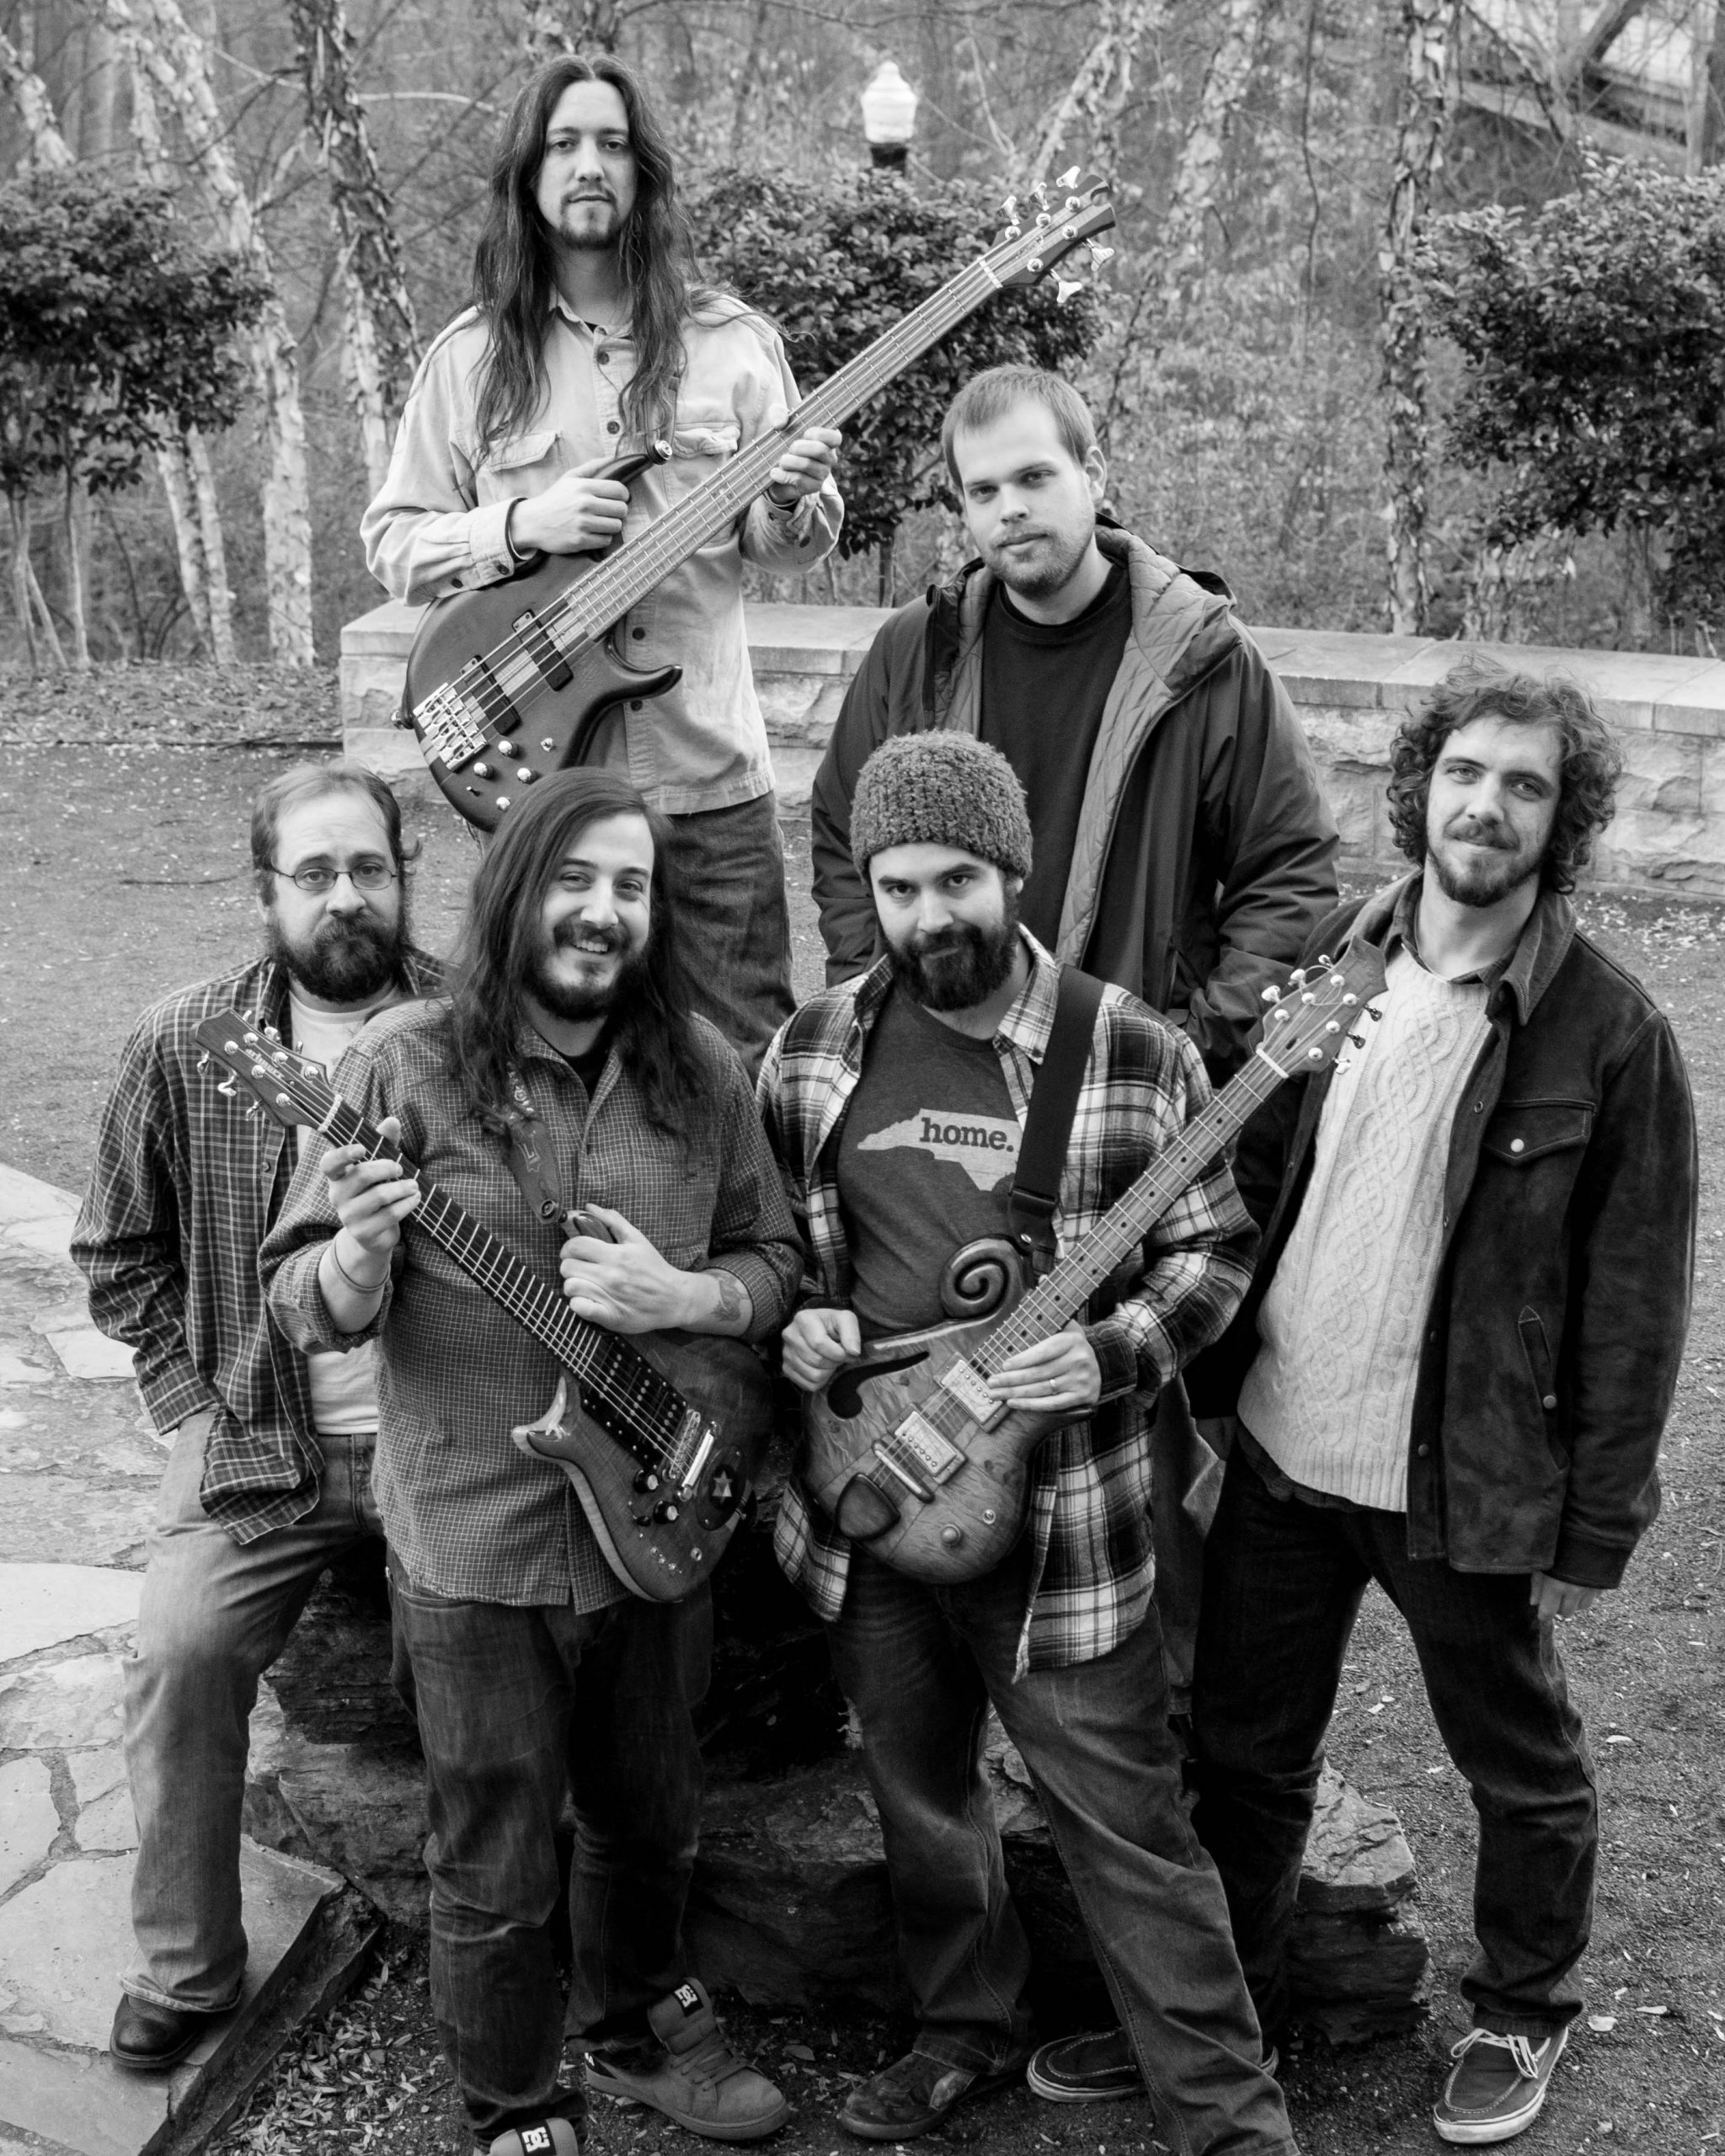 Jam Machines: An Evening with The Mantras and Baltimore's ELM at Gypsy Sally's 5/23/15